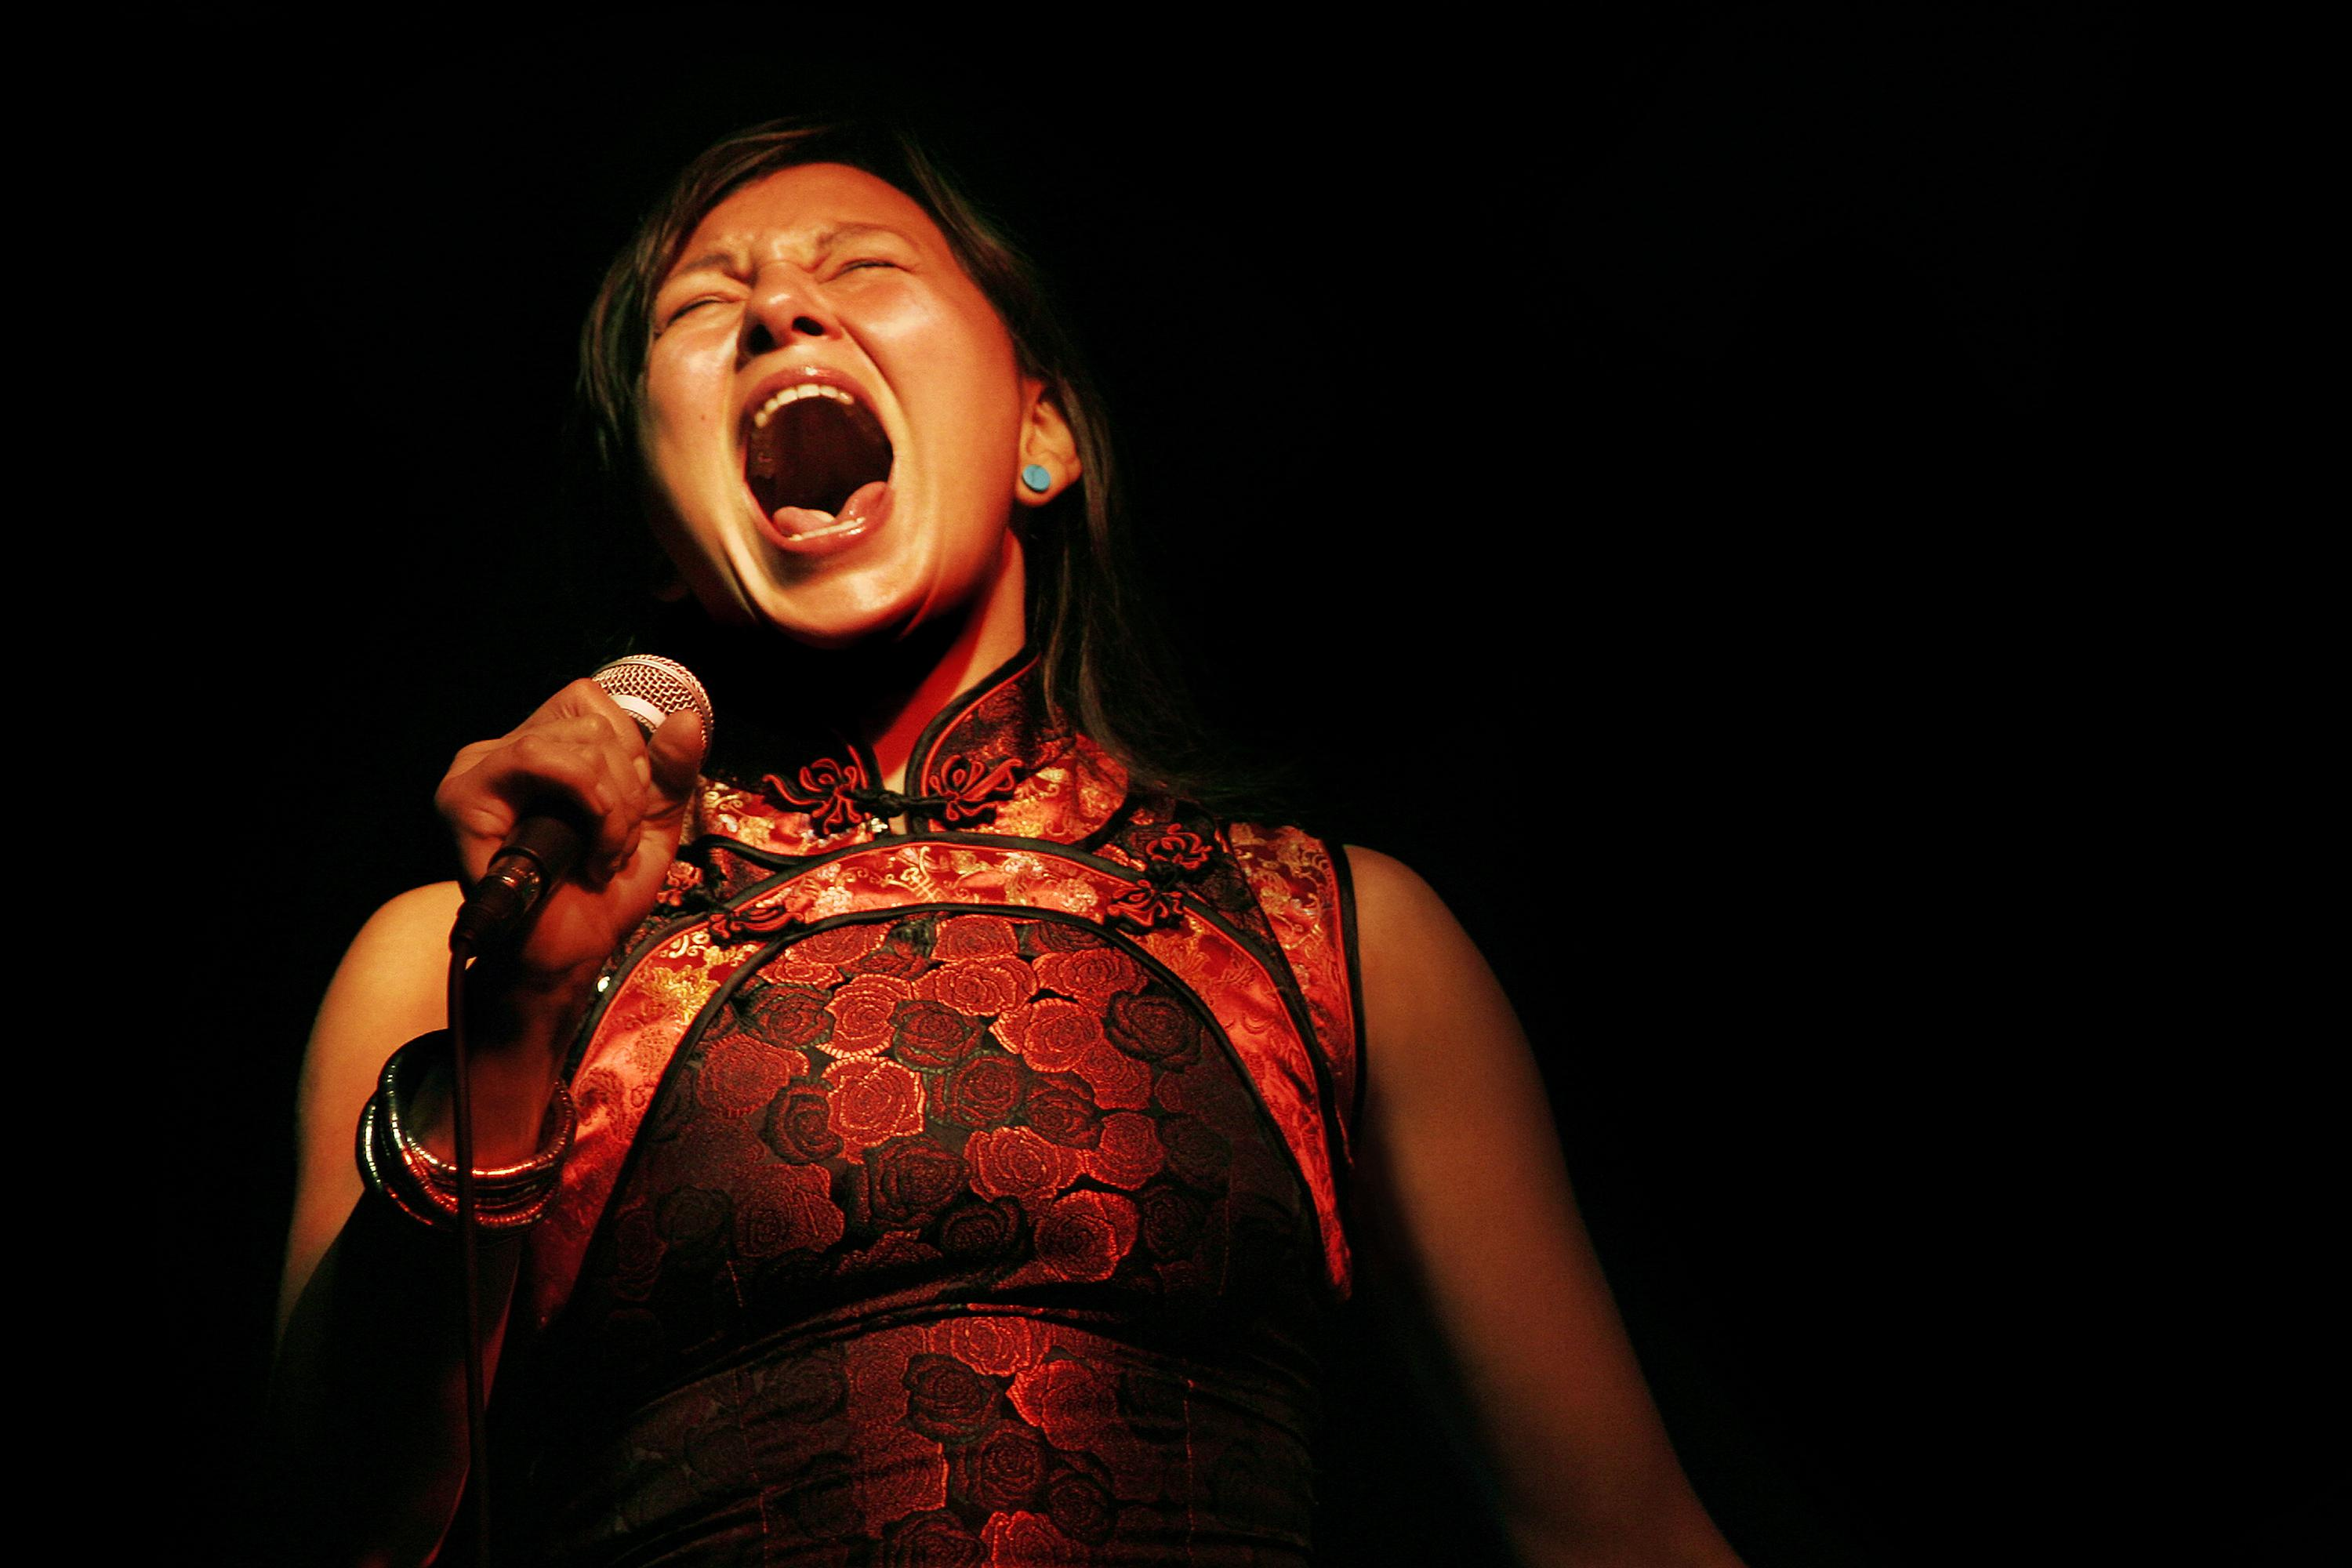 A woman in in Asian clothing sings into her microphone on a pitch-black stage